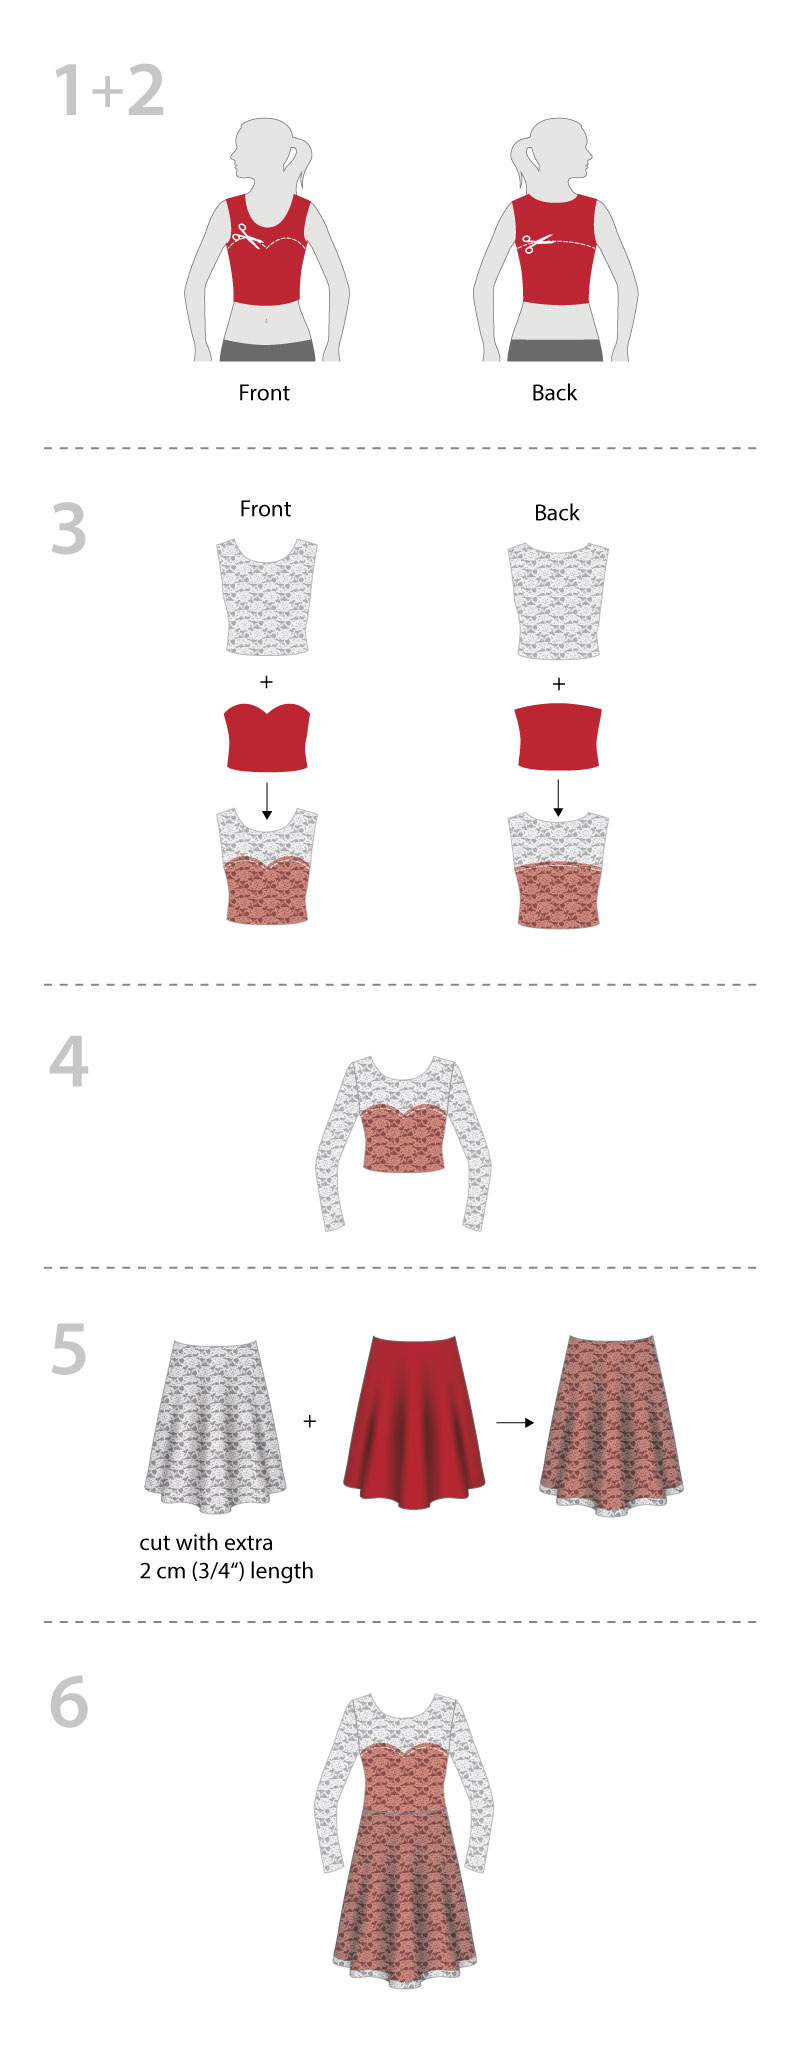 pattydoo sewing tutorial for lace jersey party dress